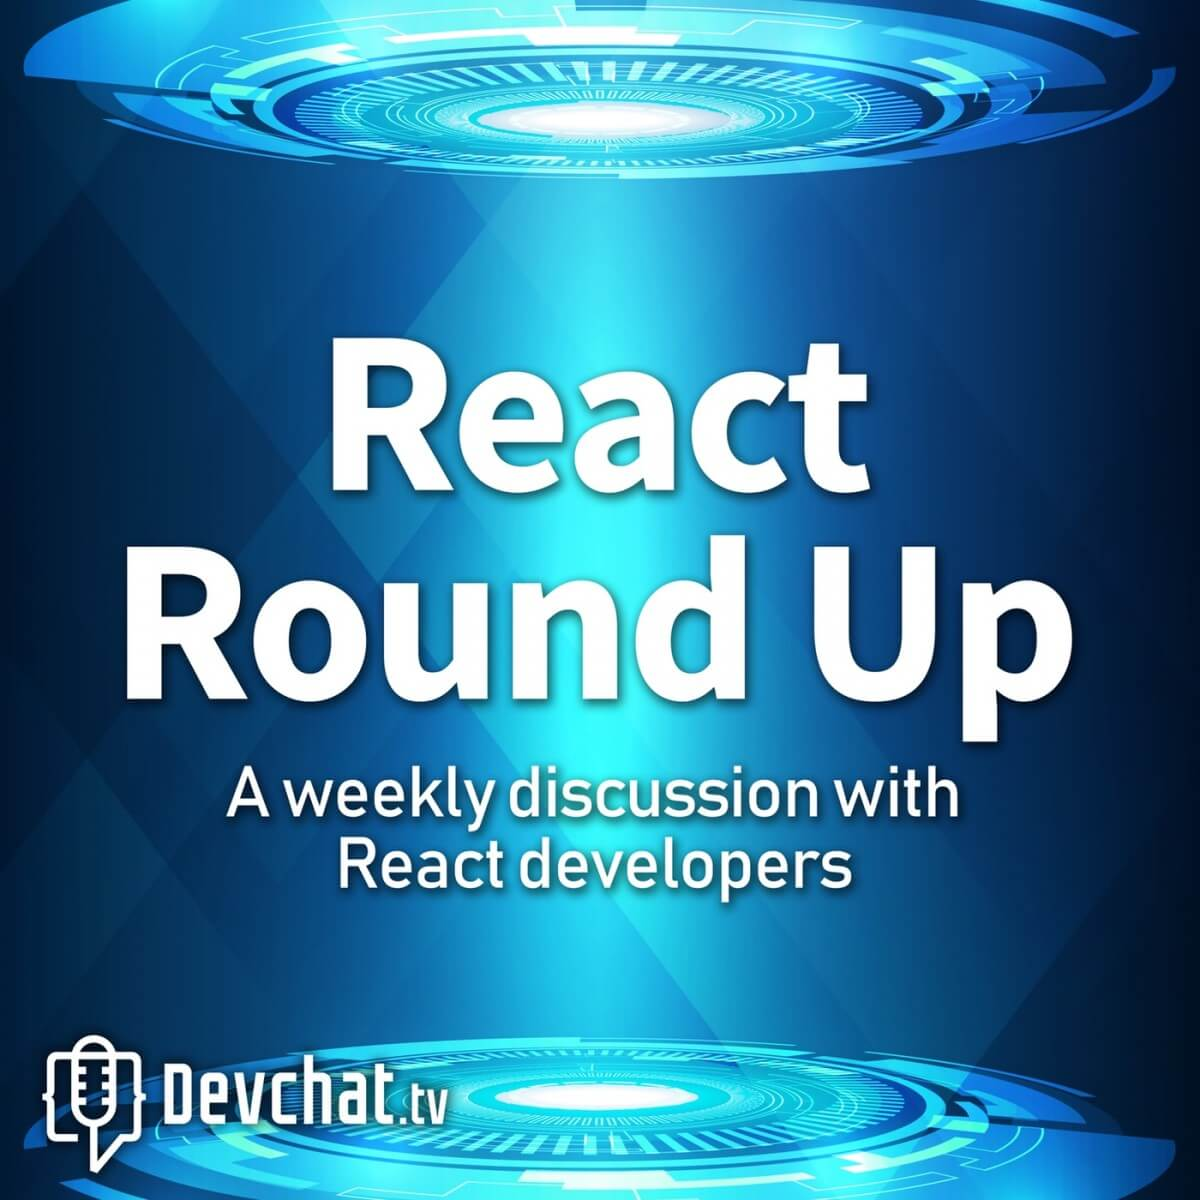 reactroundup - @reactroundup Twitter Profile and Downloader